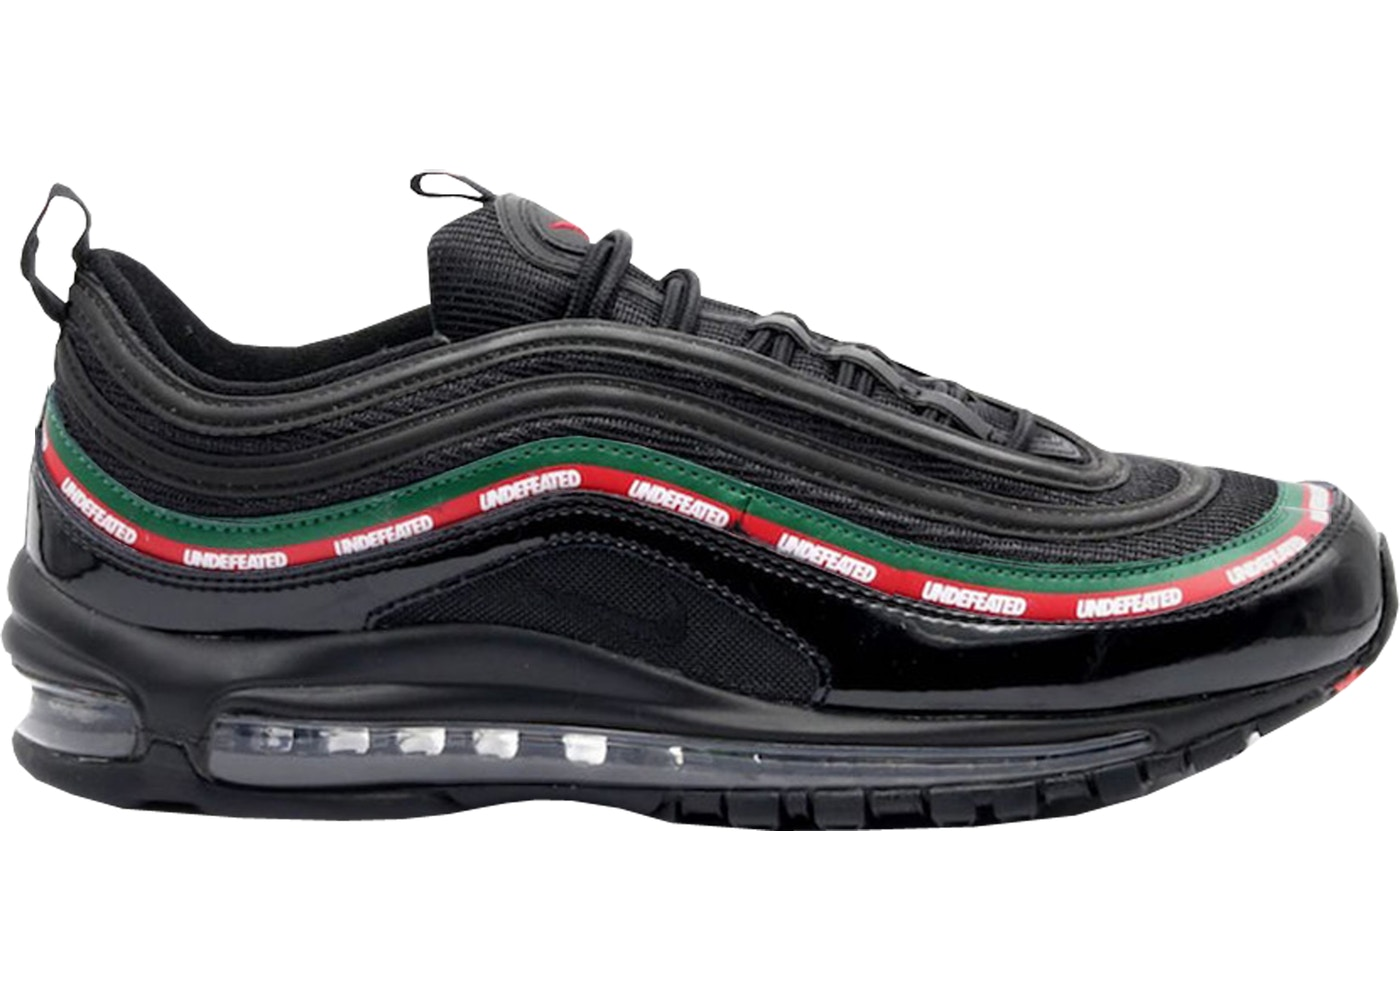 Nike Air Max 97 PLUS AVAILABLE NOW The Drop Date